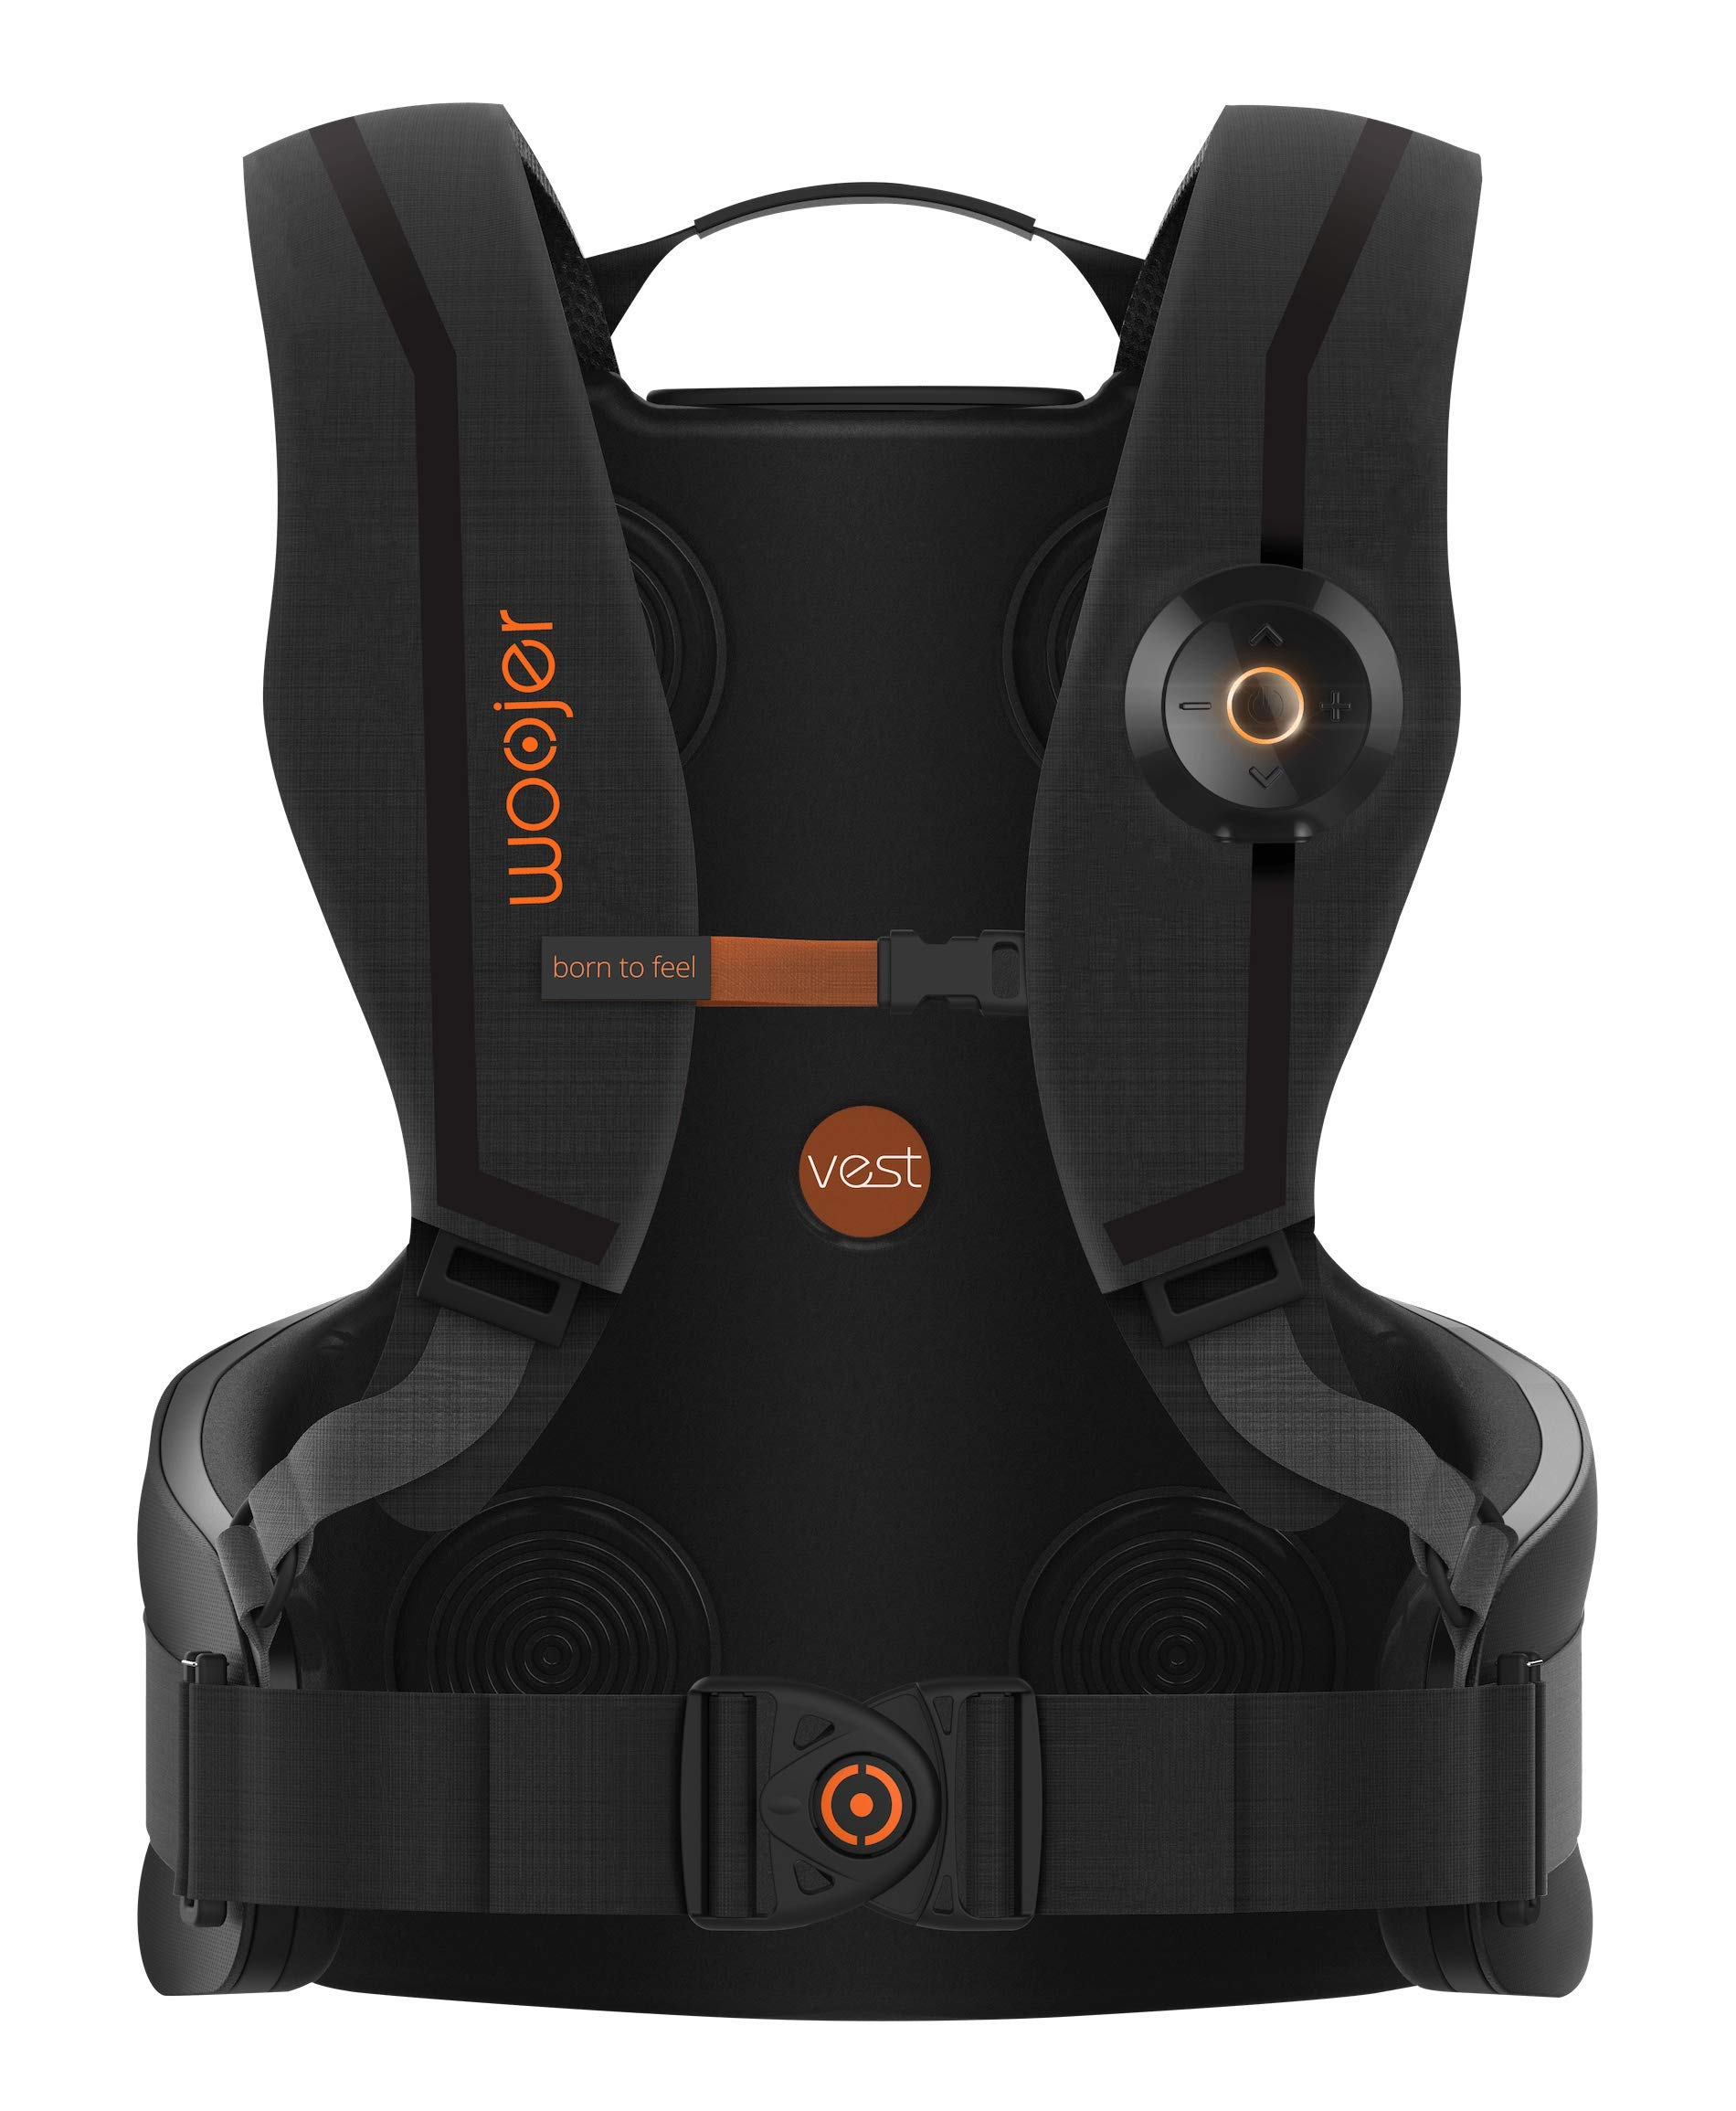 Woojer Vest Pro: Powerful location-specific haptic vest with a built-in 7.1 surround card that delivers the ultimate…